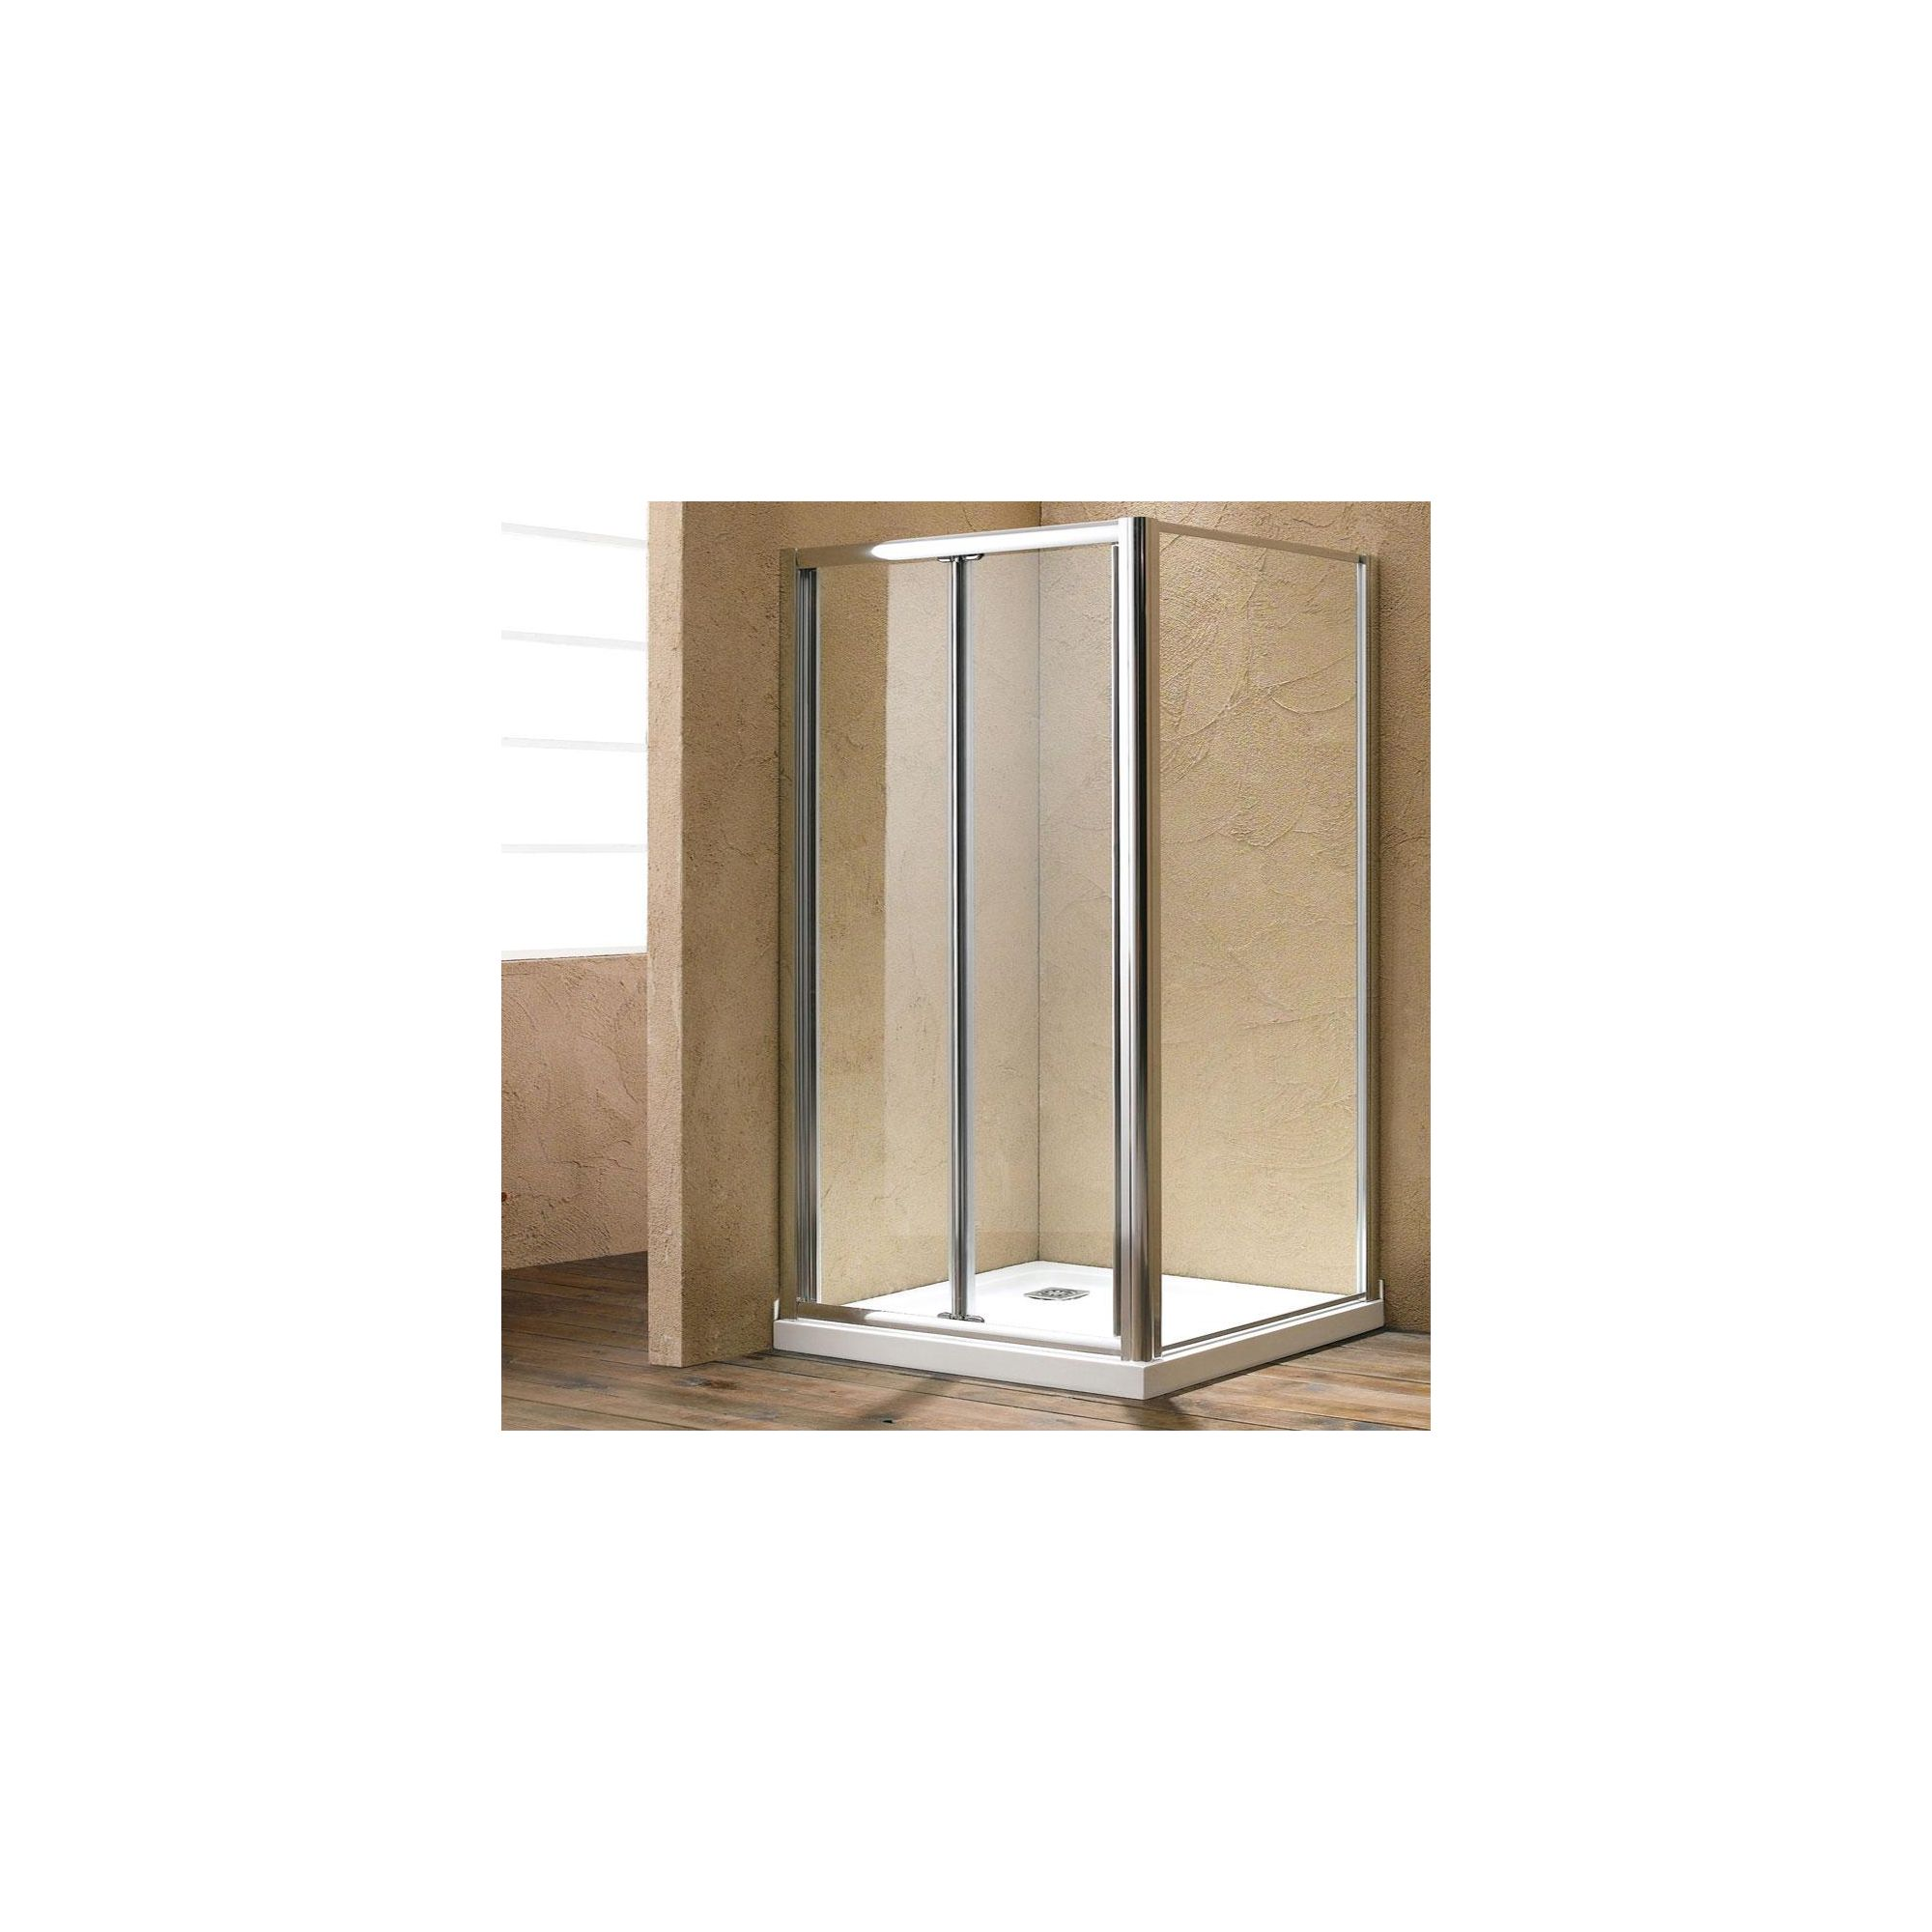 Duchy Style Twin Bi-Fold Door Shower Enclosure, 1100mm x 700mm, 6mm Glass, Low Profile Tray at Tesco Direct